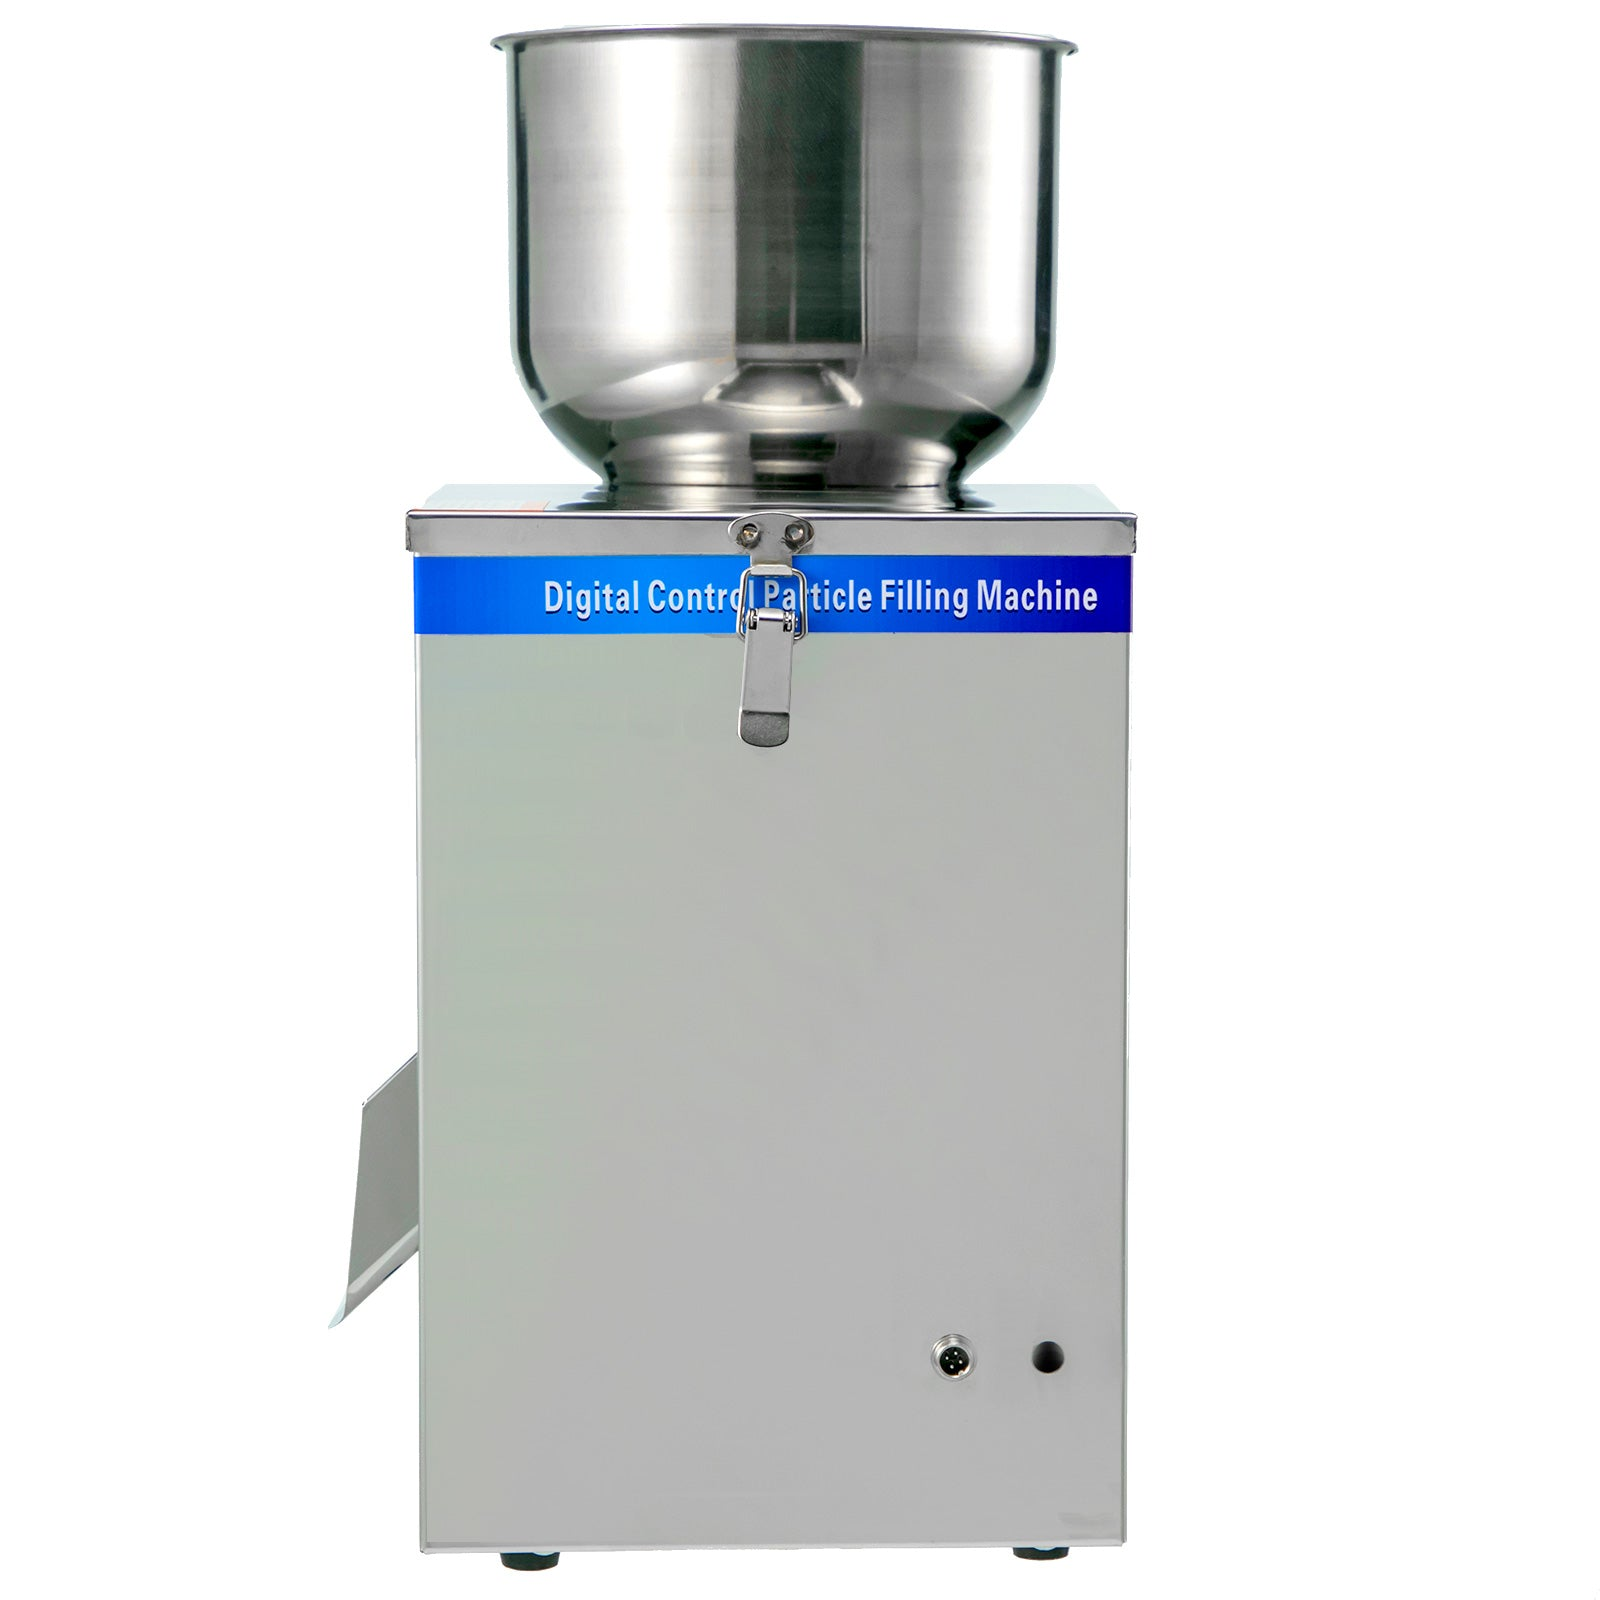 Powder Filling Machine 2-50g Particle Subpackage 180w Automatic Filling Function